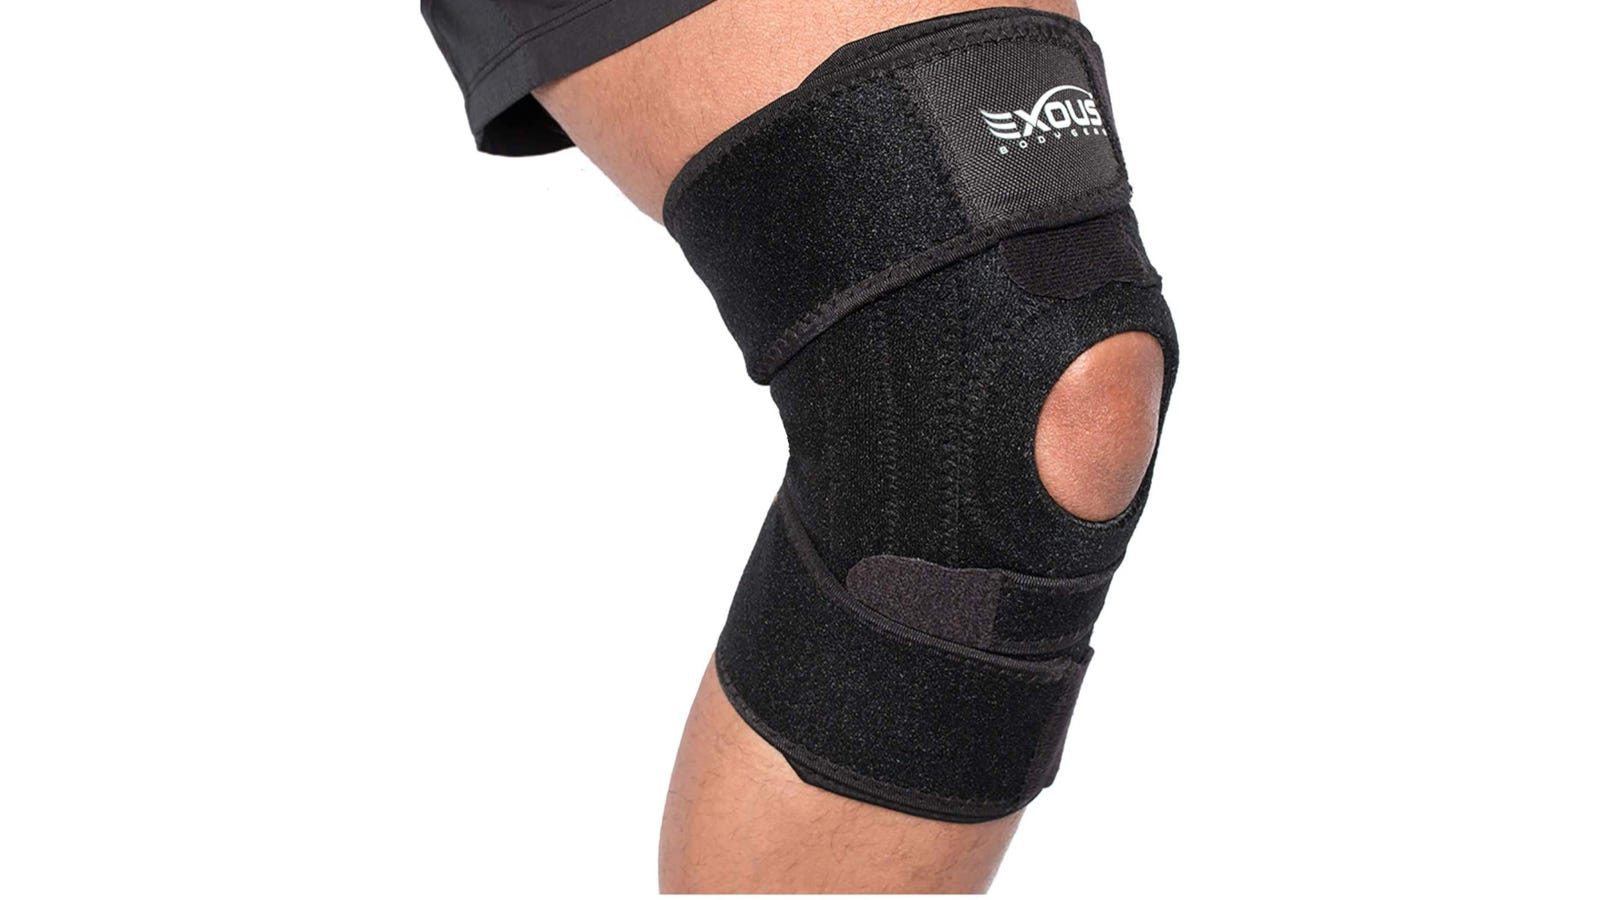 A person wearing a black open patella knee brace with 4 adjustable anchor points.